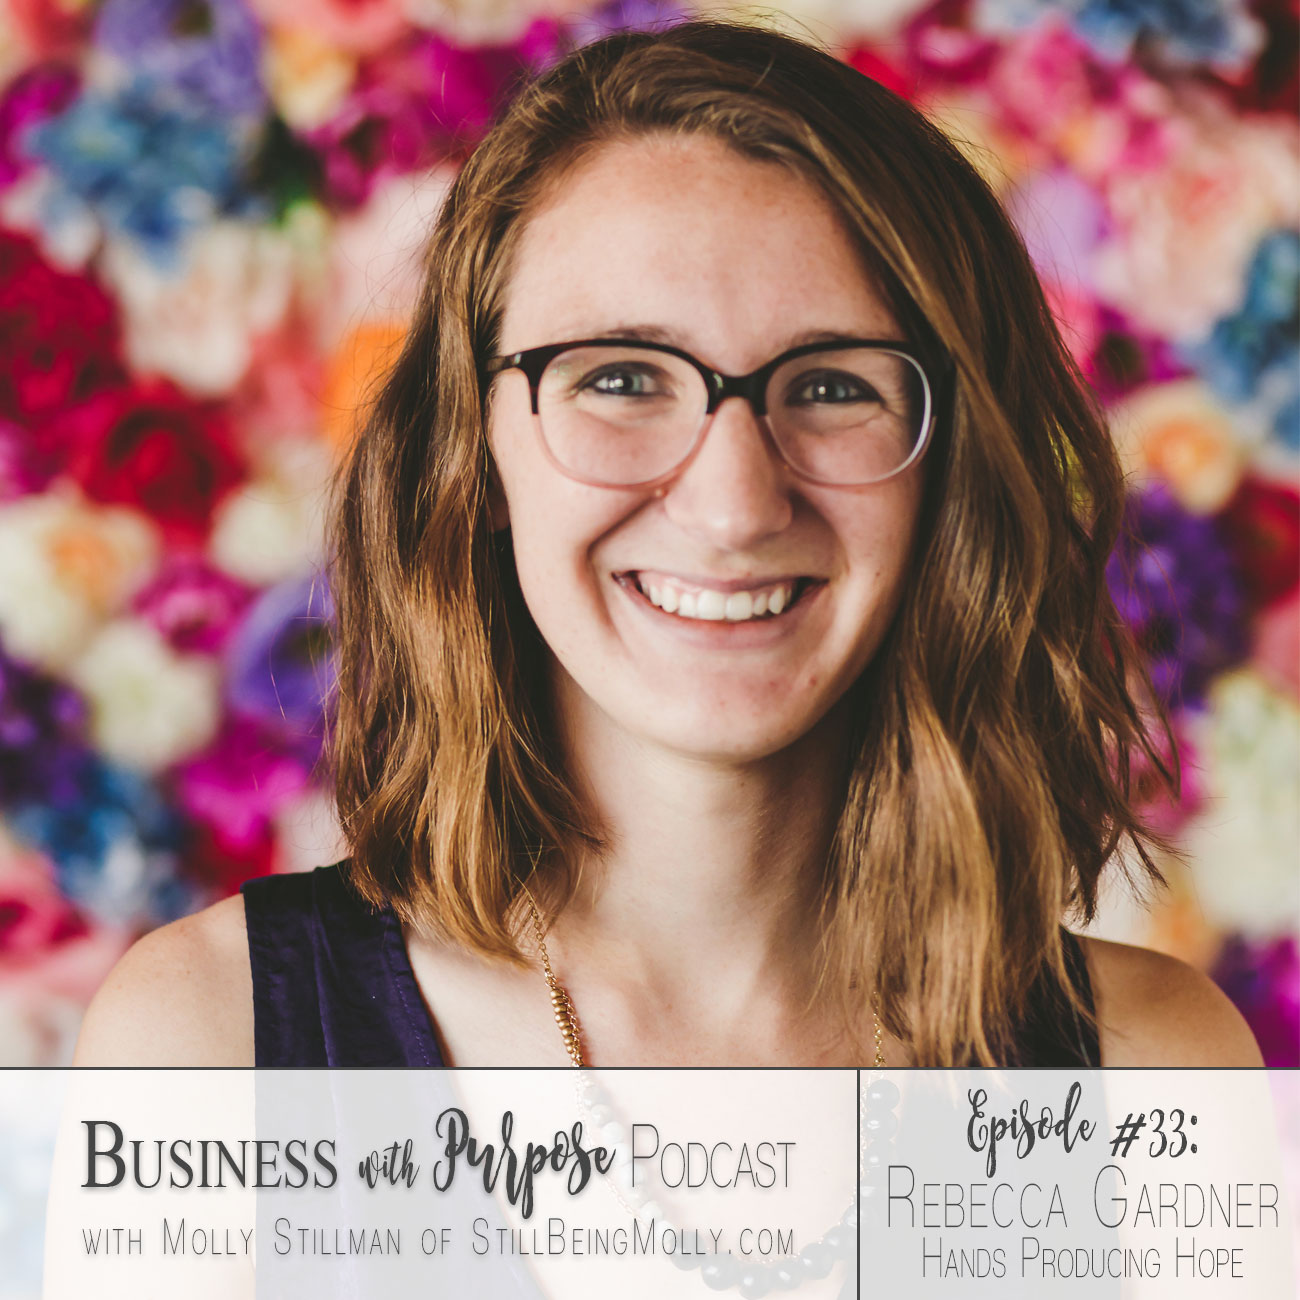 EP 33. Rebecca Gardner, Founder of Hands Producing Hope